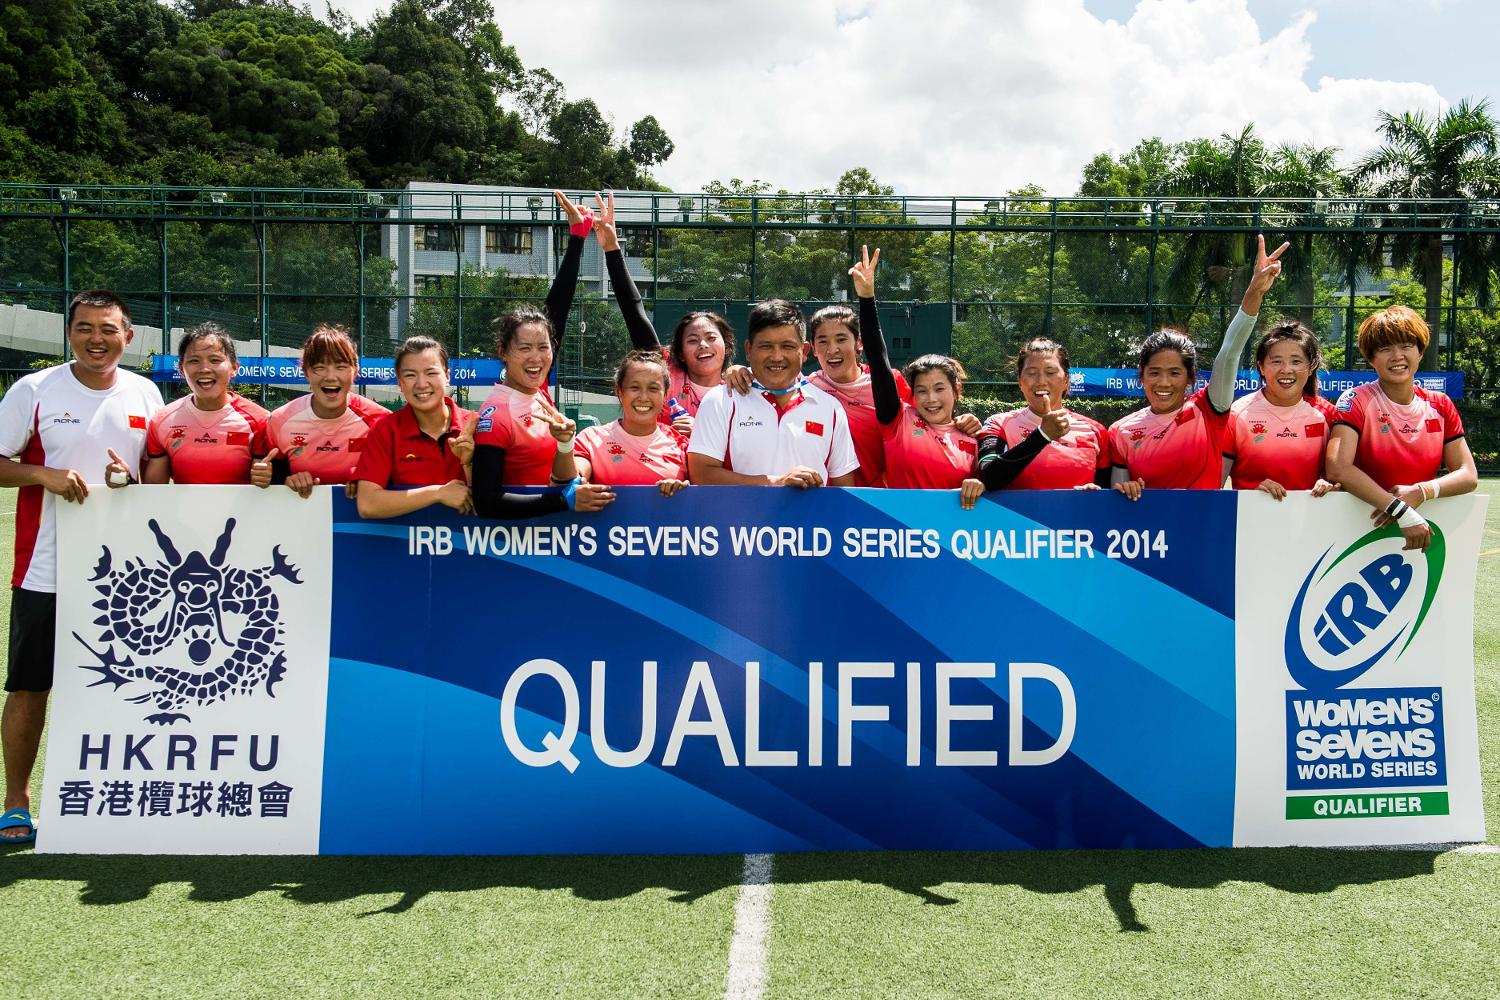 IRB Women's Sevens Qualifier 2014